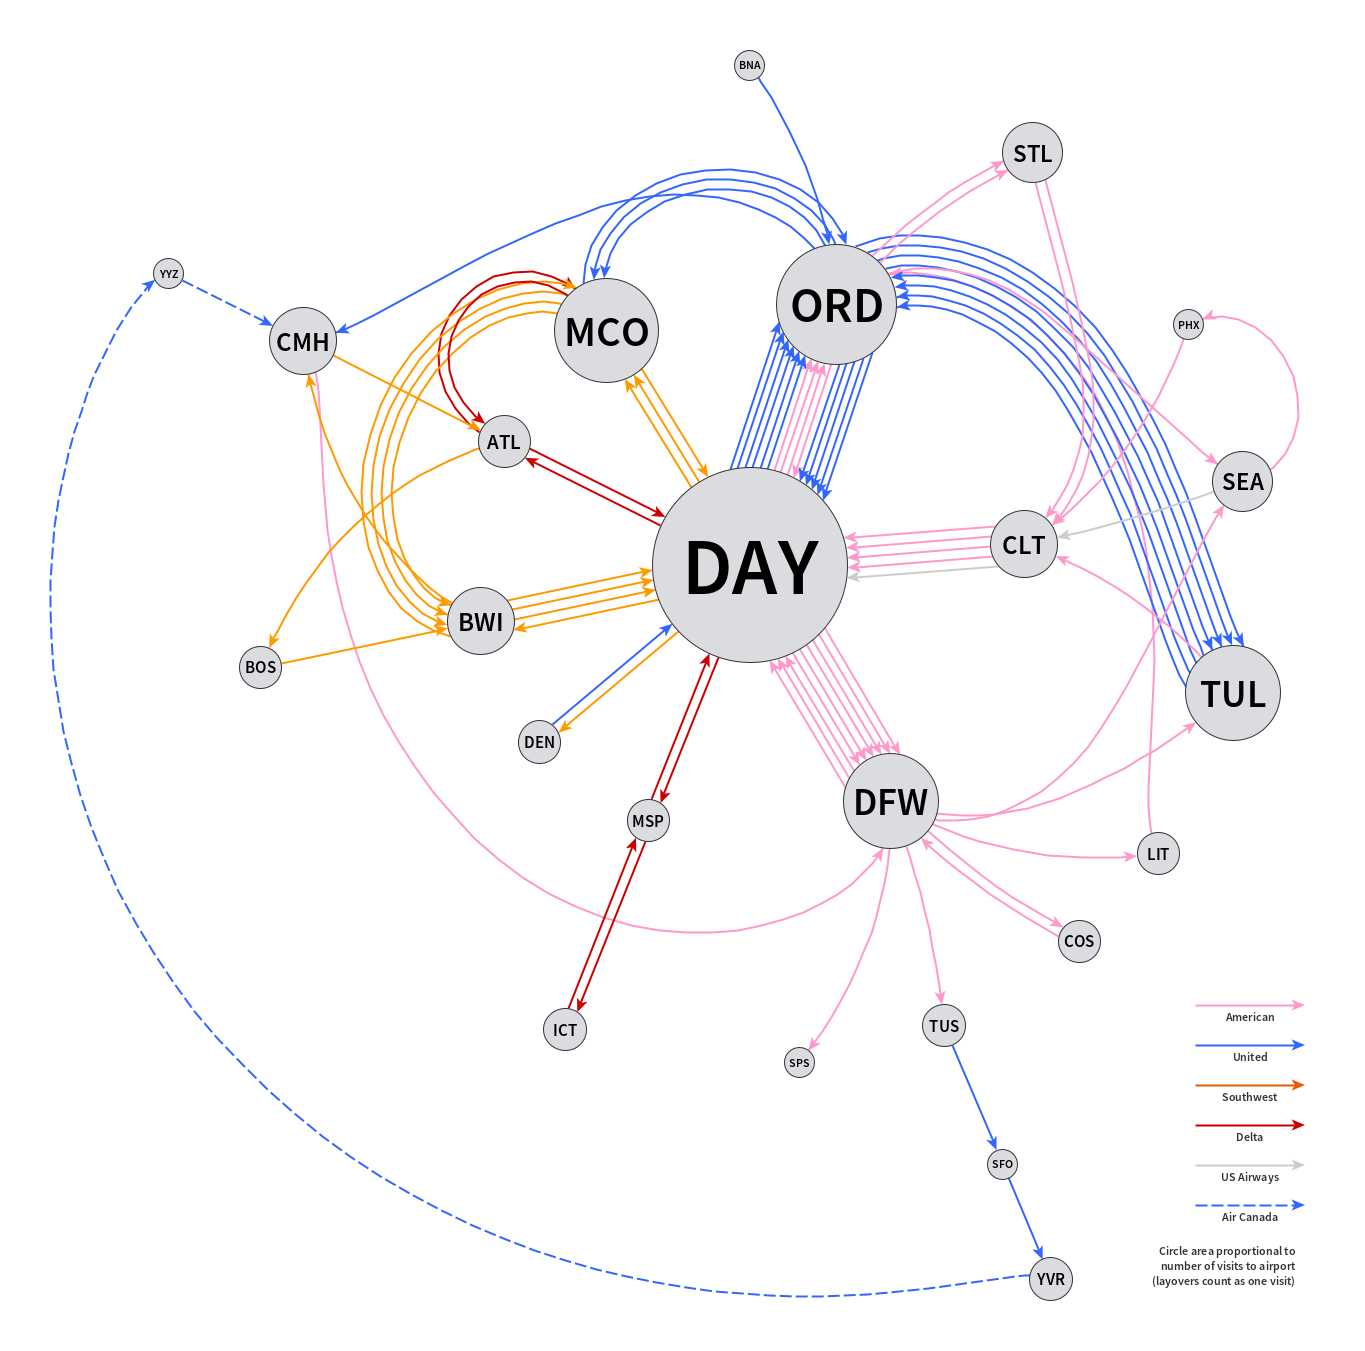 Directed graph for 2015 flights